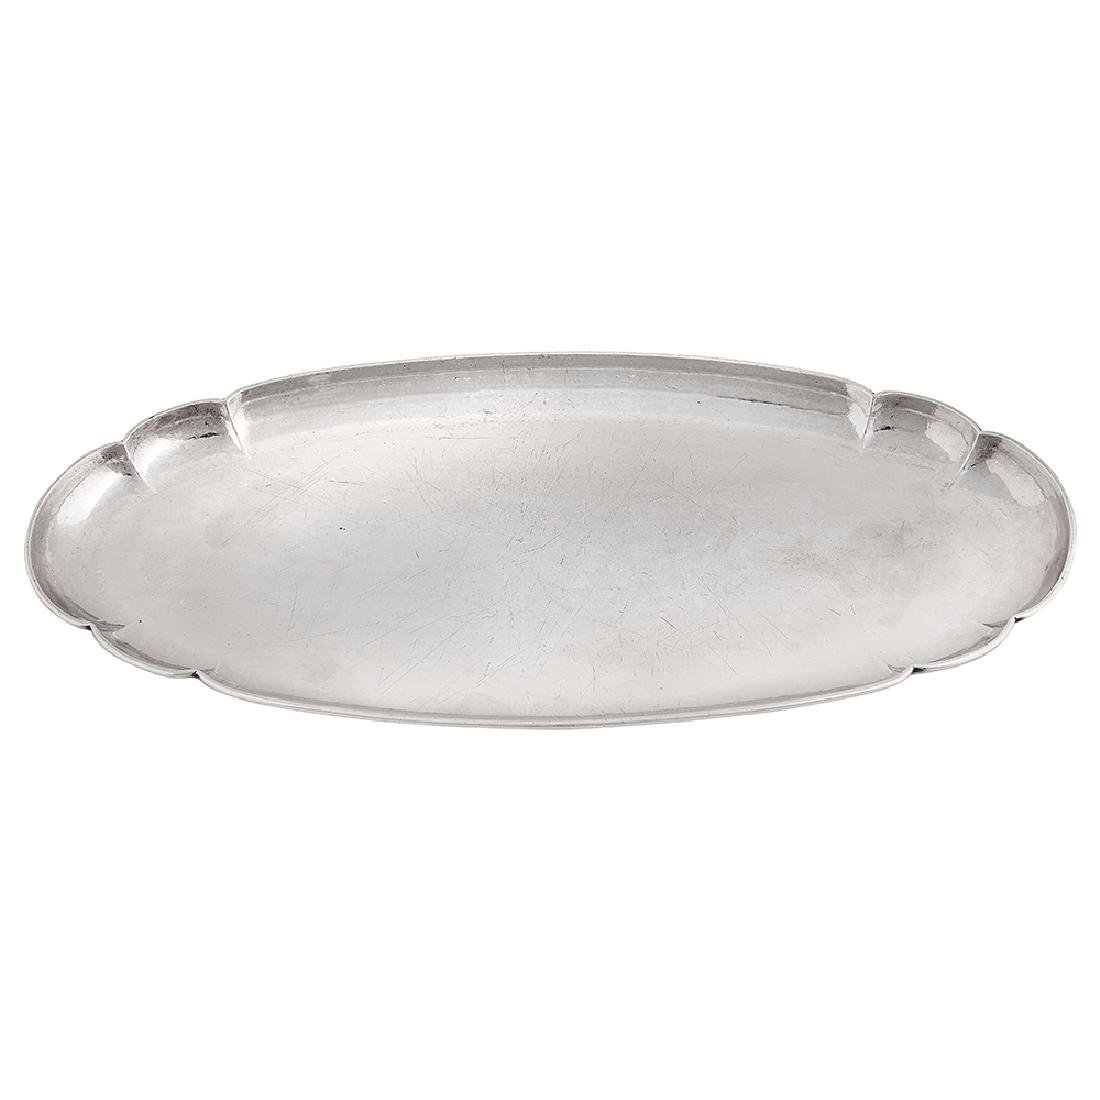 The Kalo Shop lobed oval serving tray